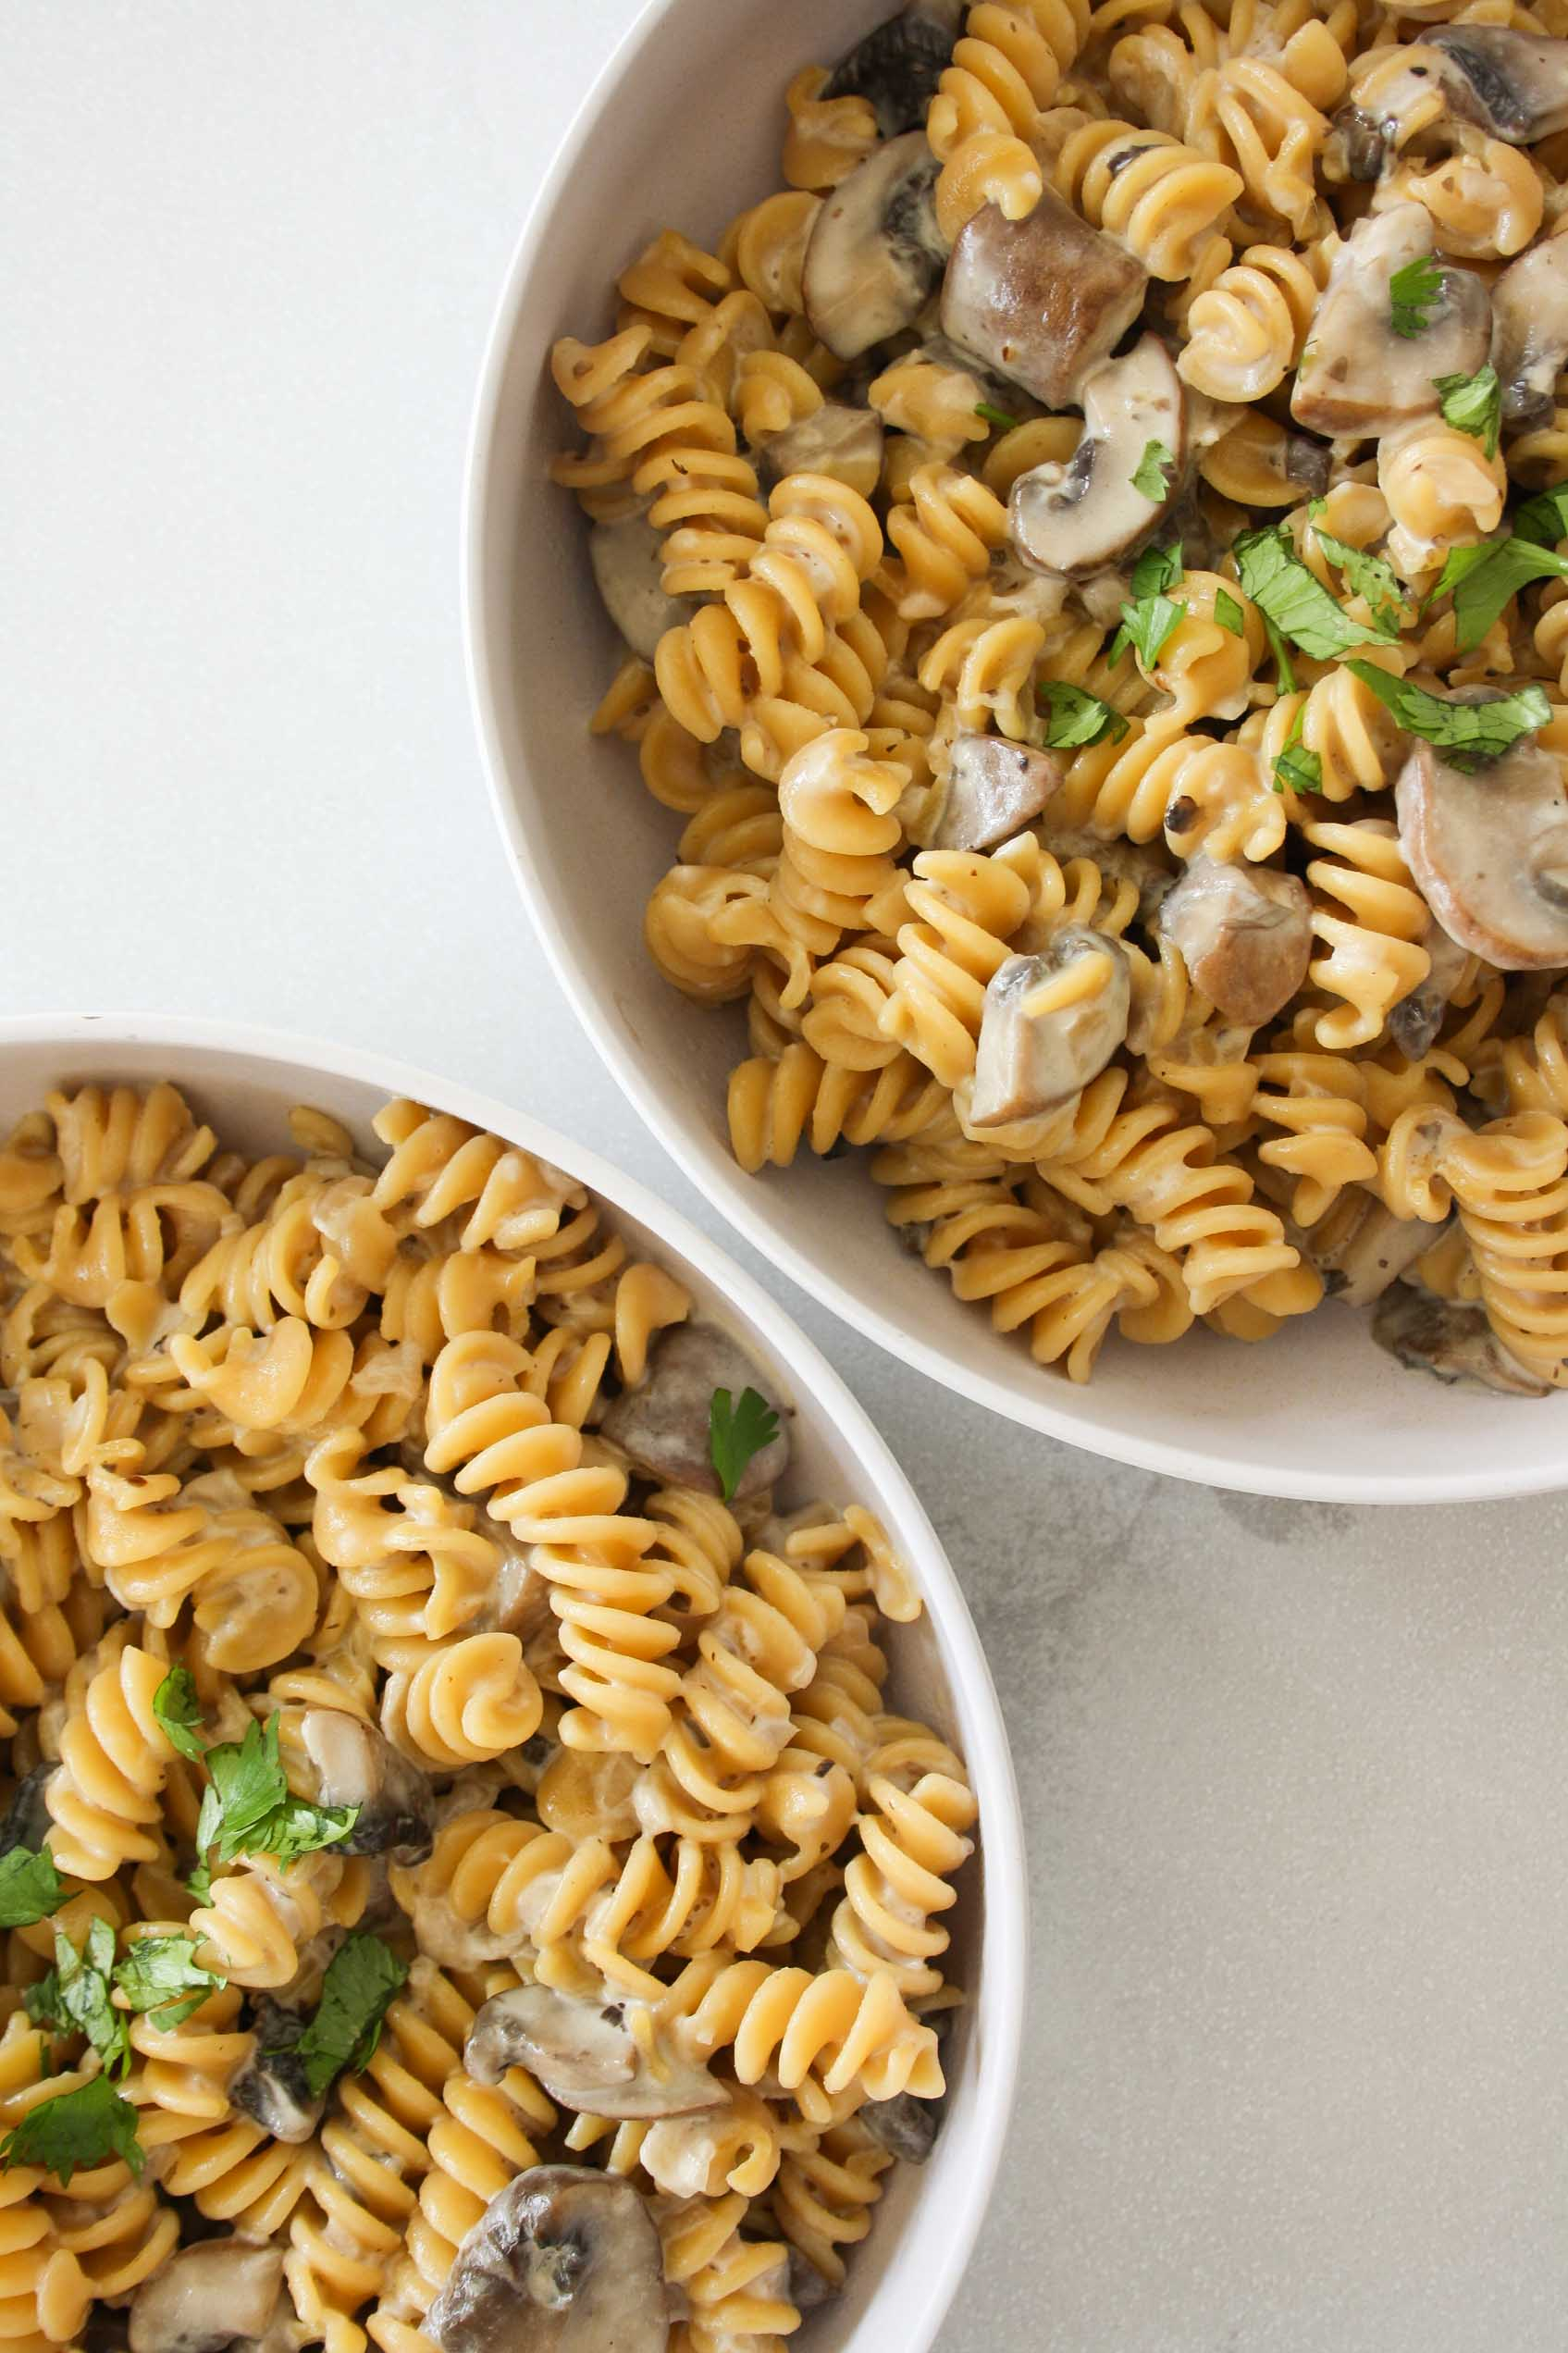 chickpea pasta with creamy mushroom sauce in two bowls